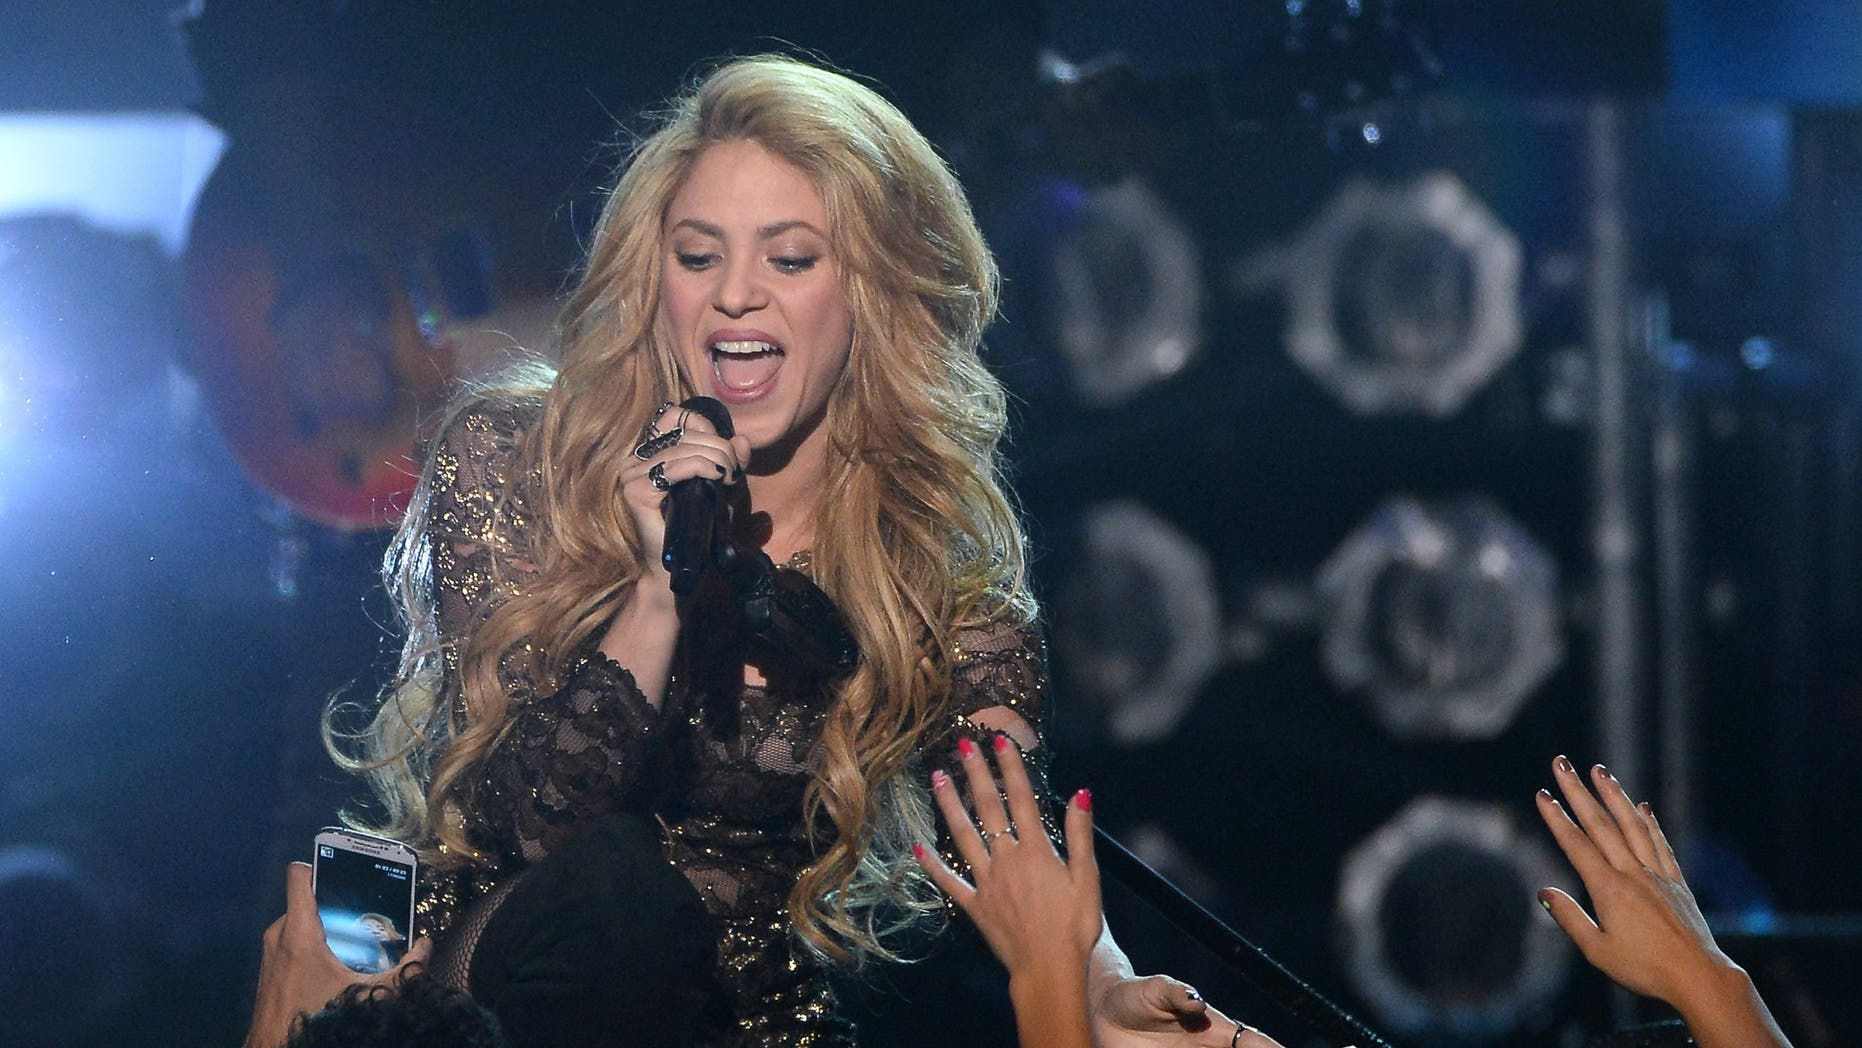 Singer Shakira performs during the 2014 Billboard Music Awards at the MGM Grand Garden Arena on May 18, 2014 in Las Vegas, Nevada.